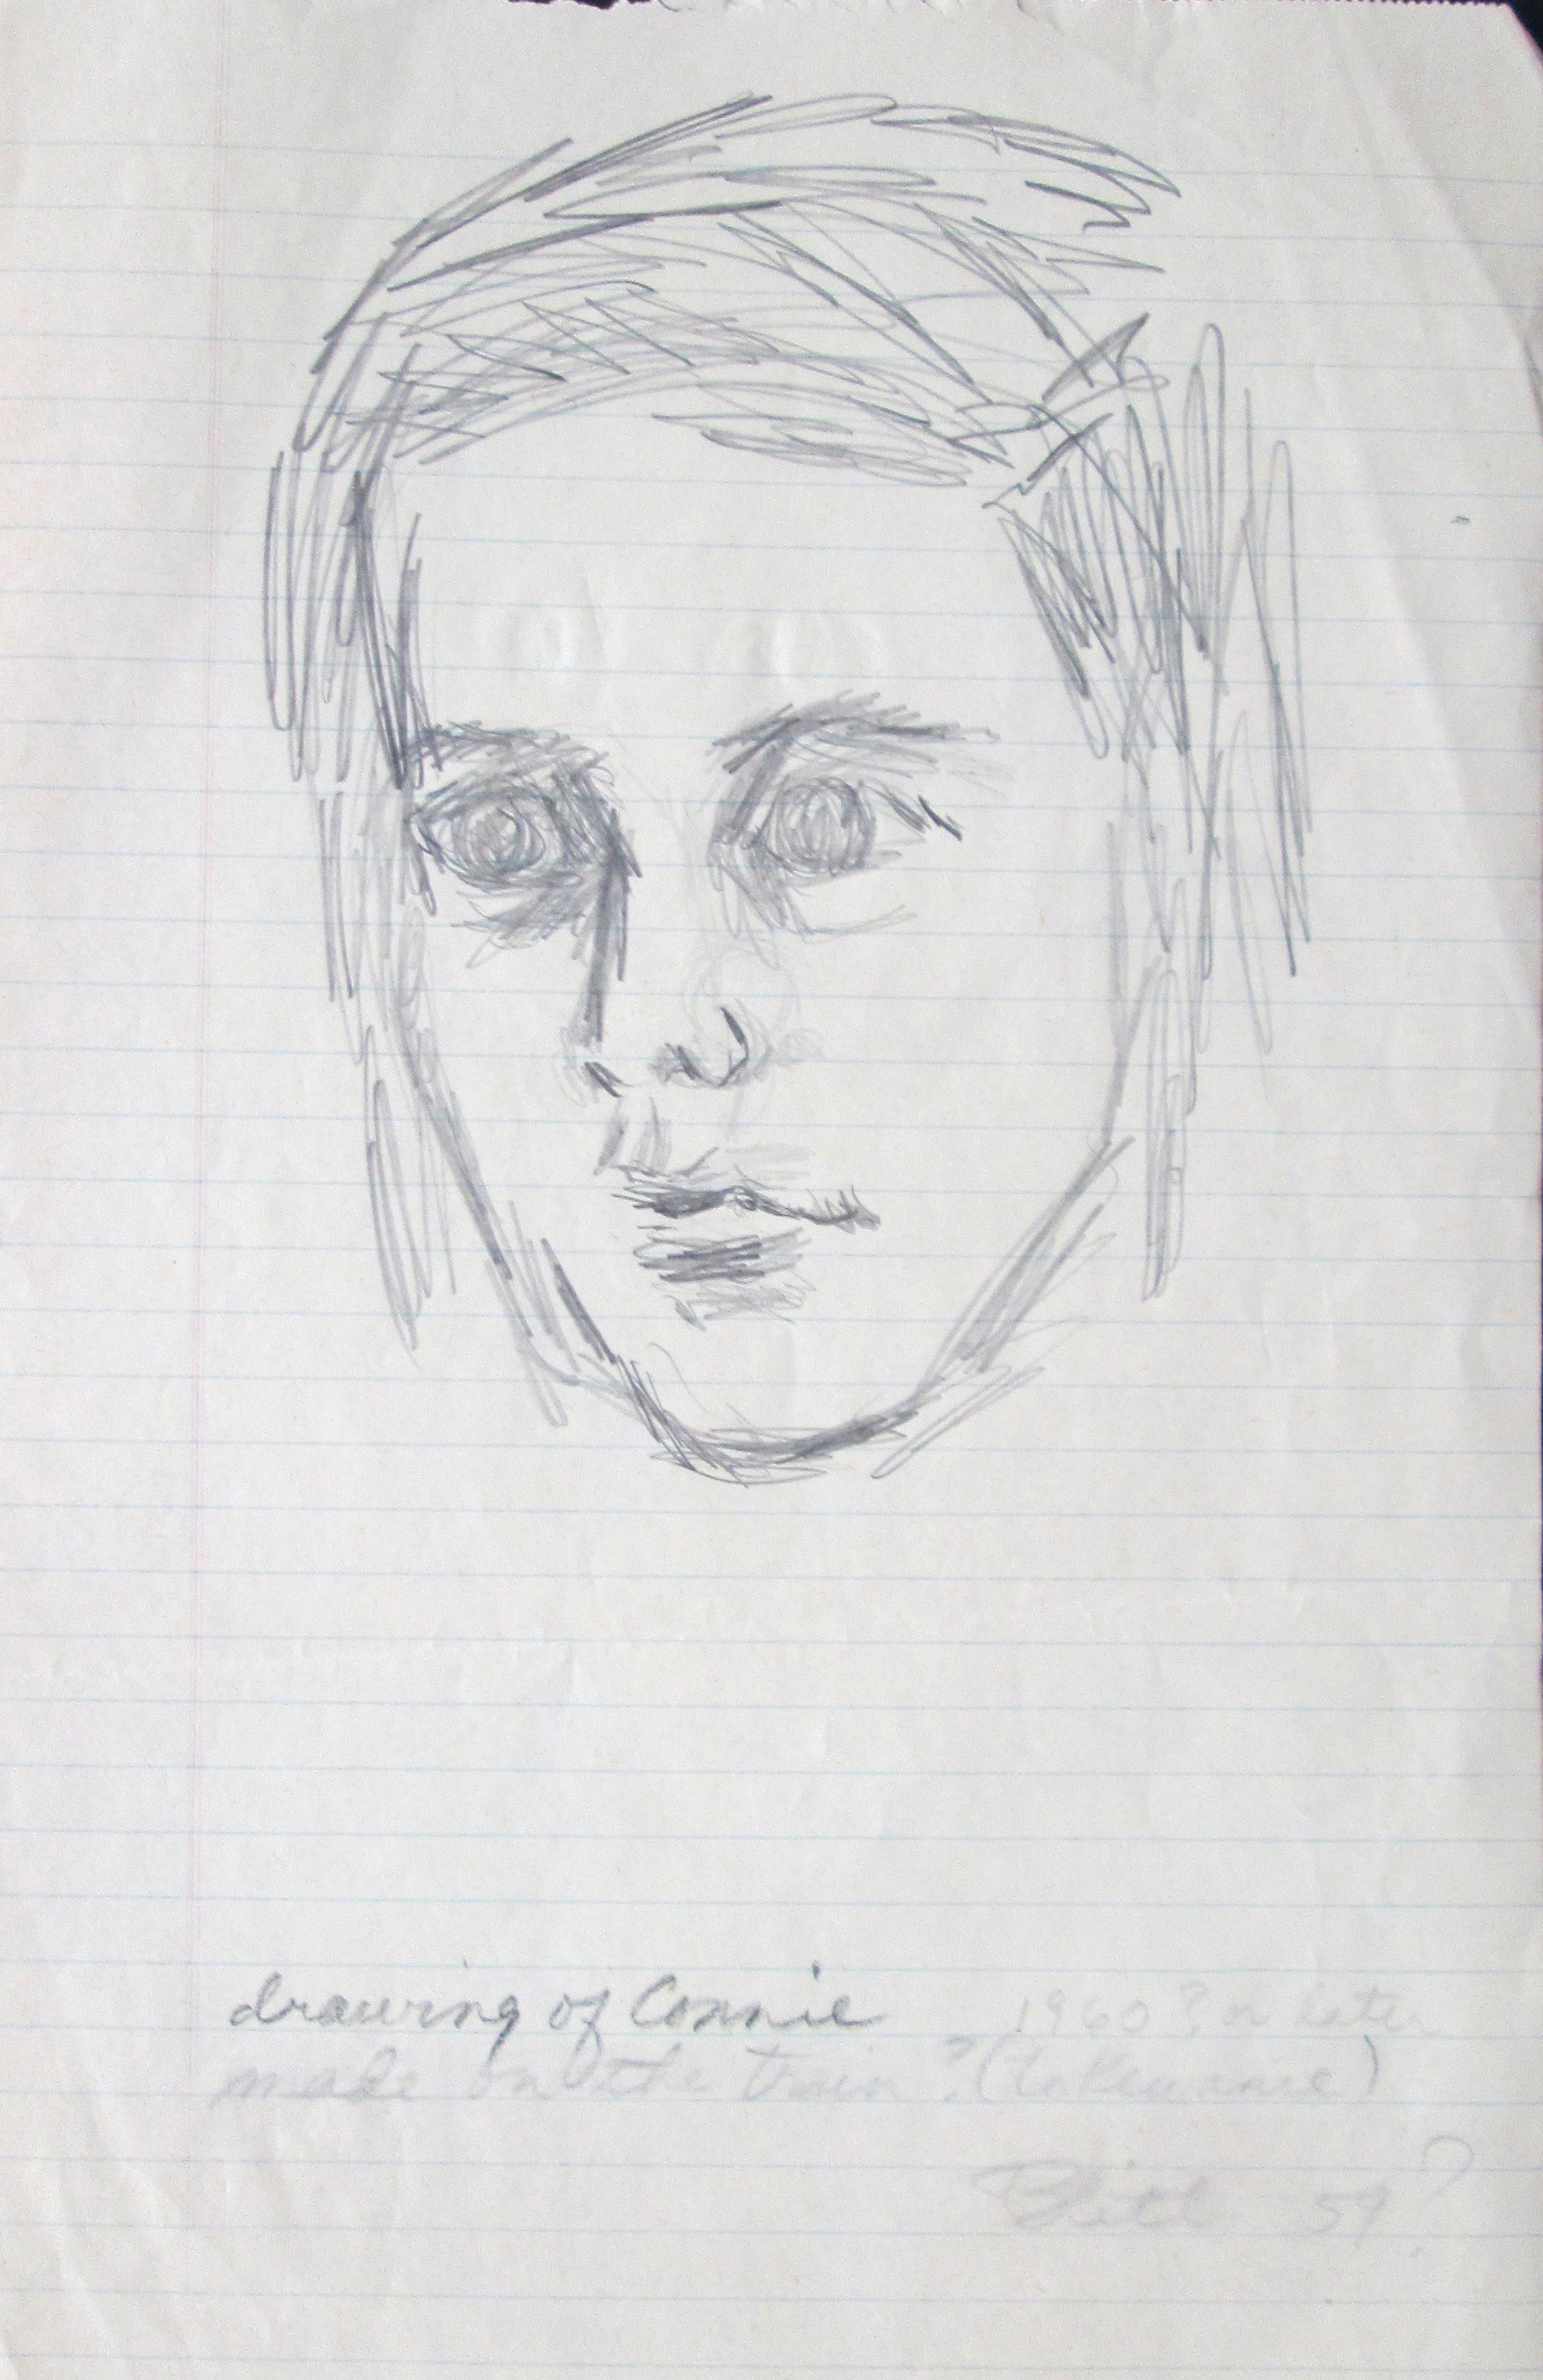 Drawing of Connie (Chela) on train to Kewanee  1959, pencil on paper, 13x8.5